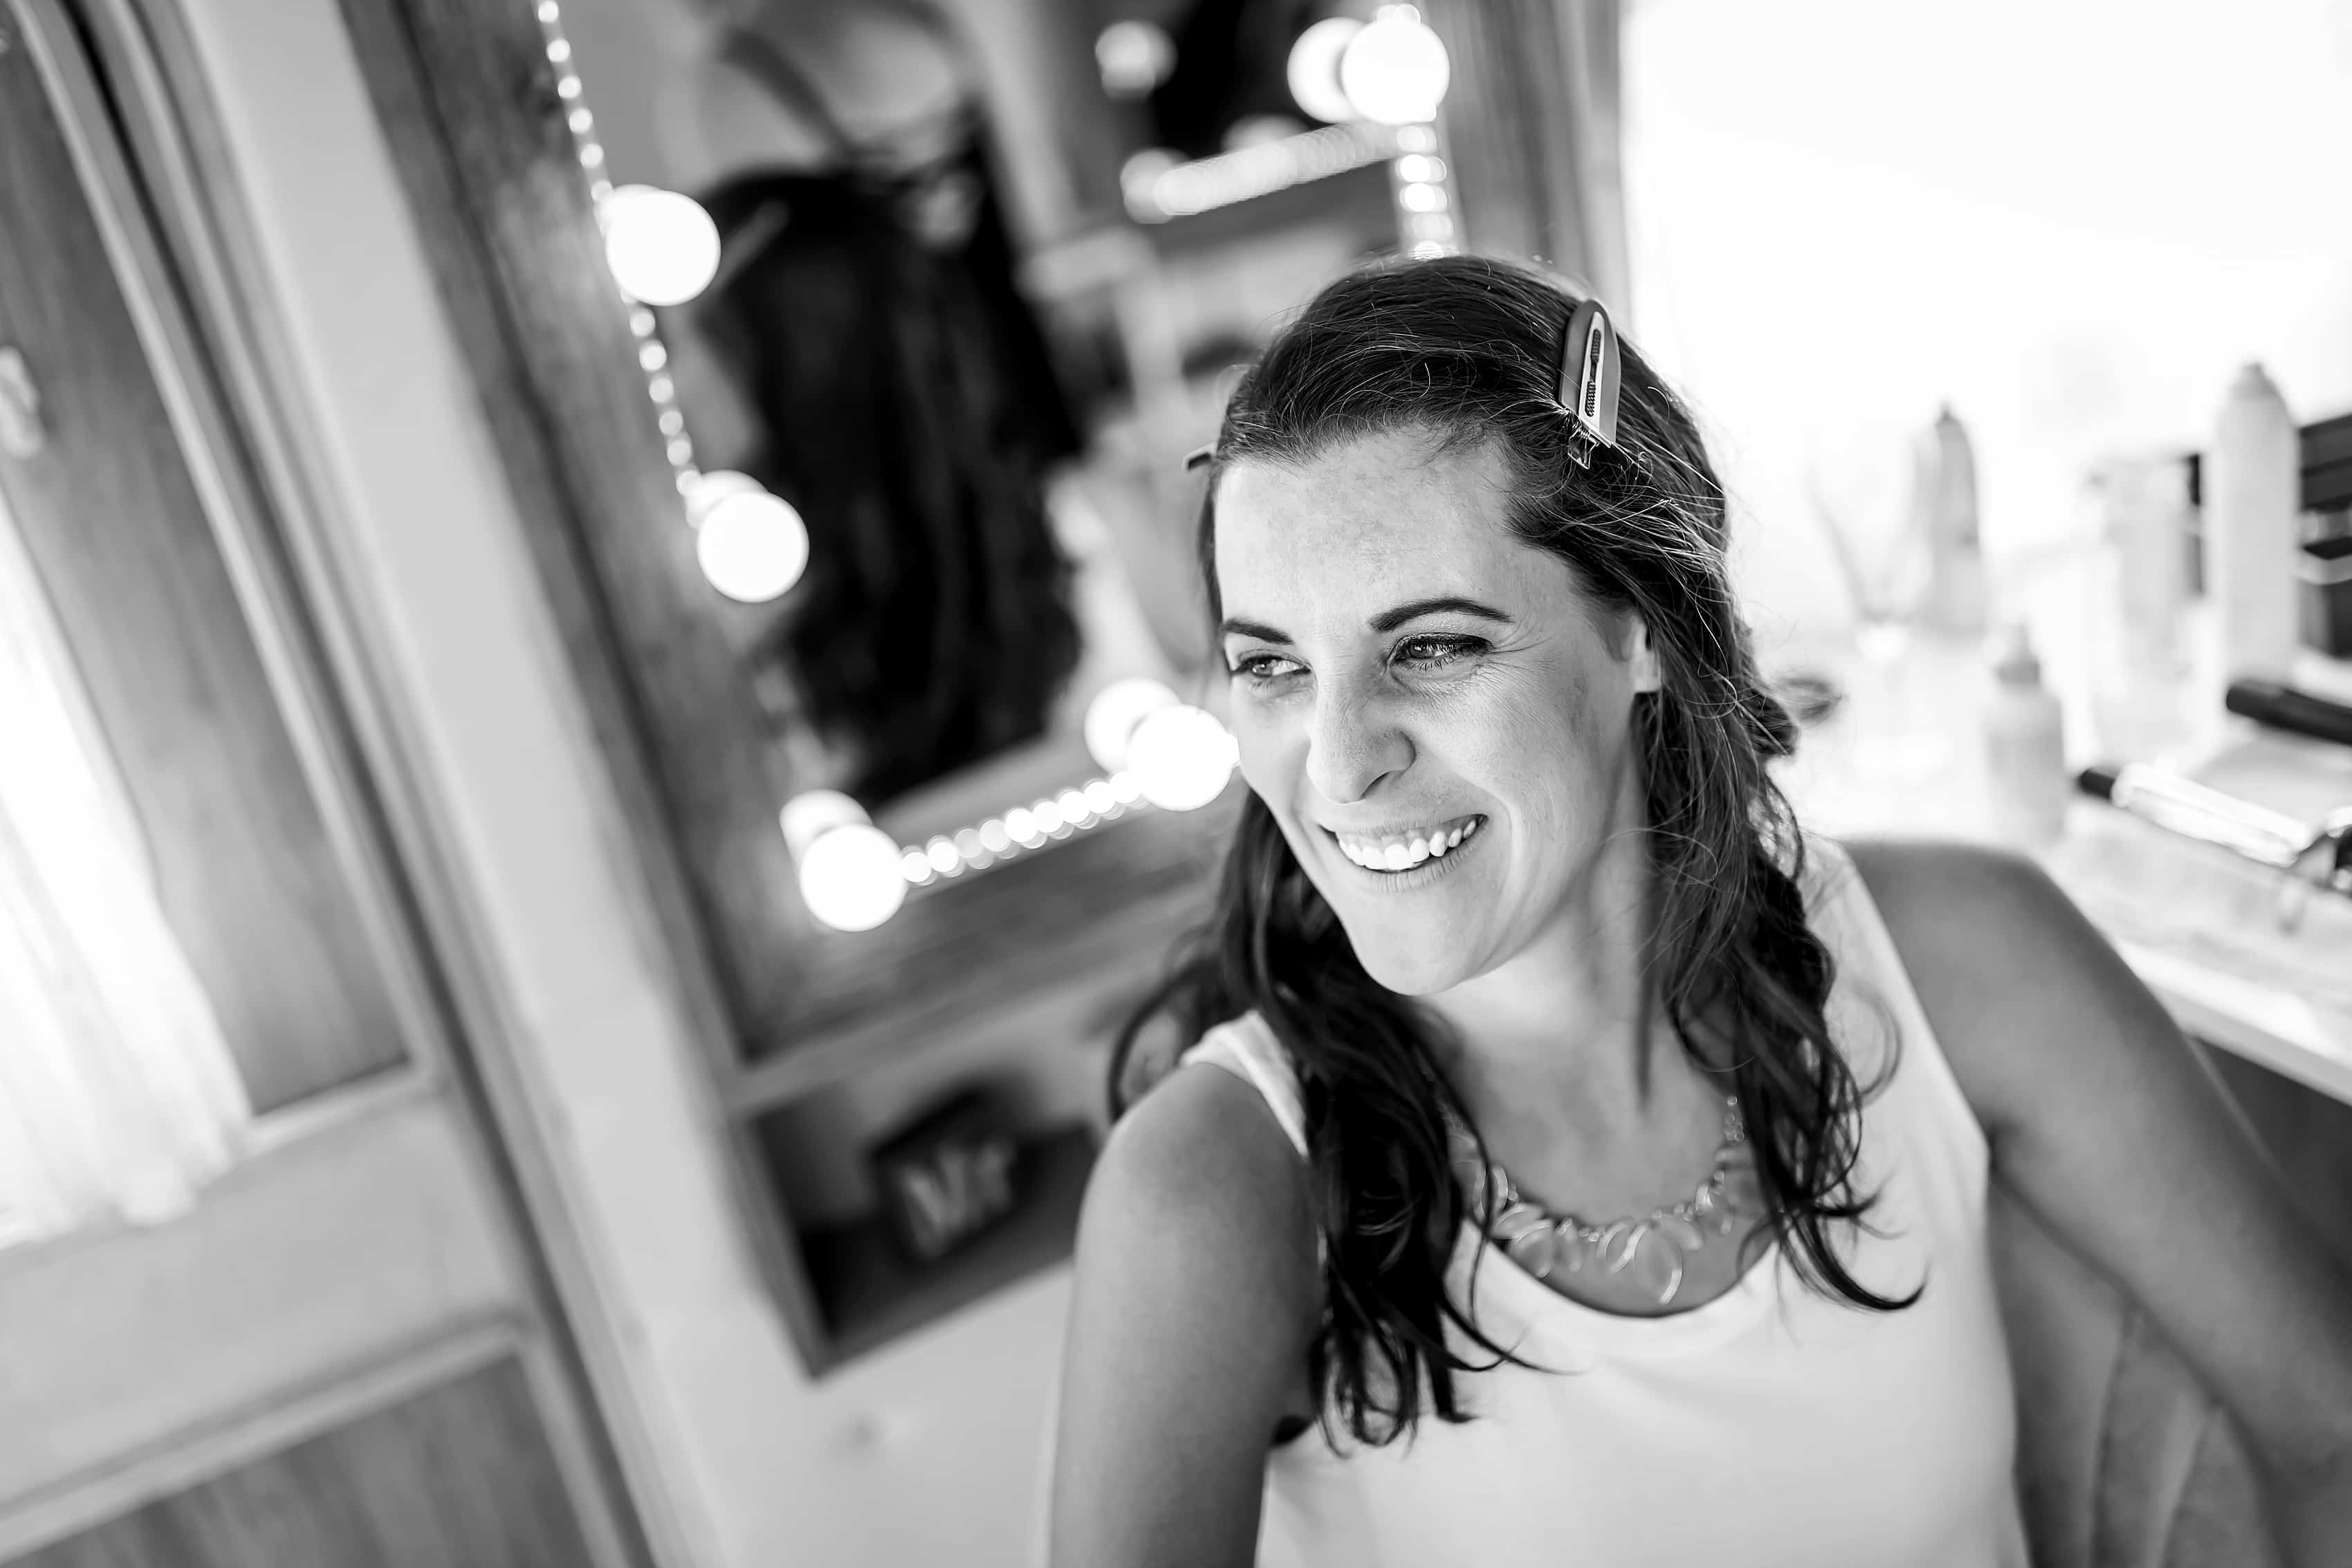 bride gets ready for wedding in makeup trailer at Lionsgate Event Center